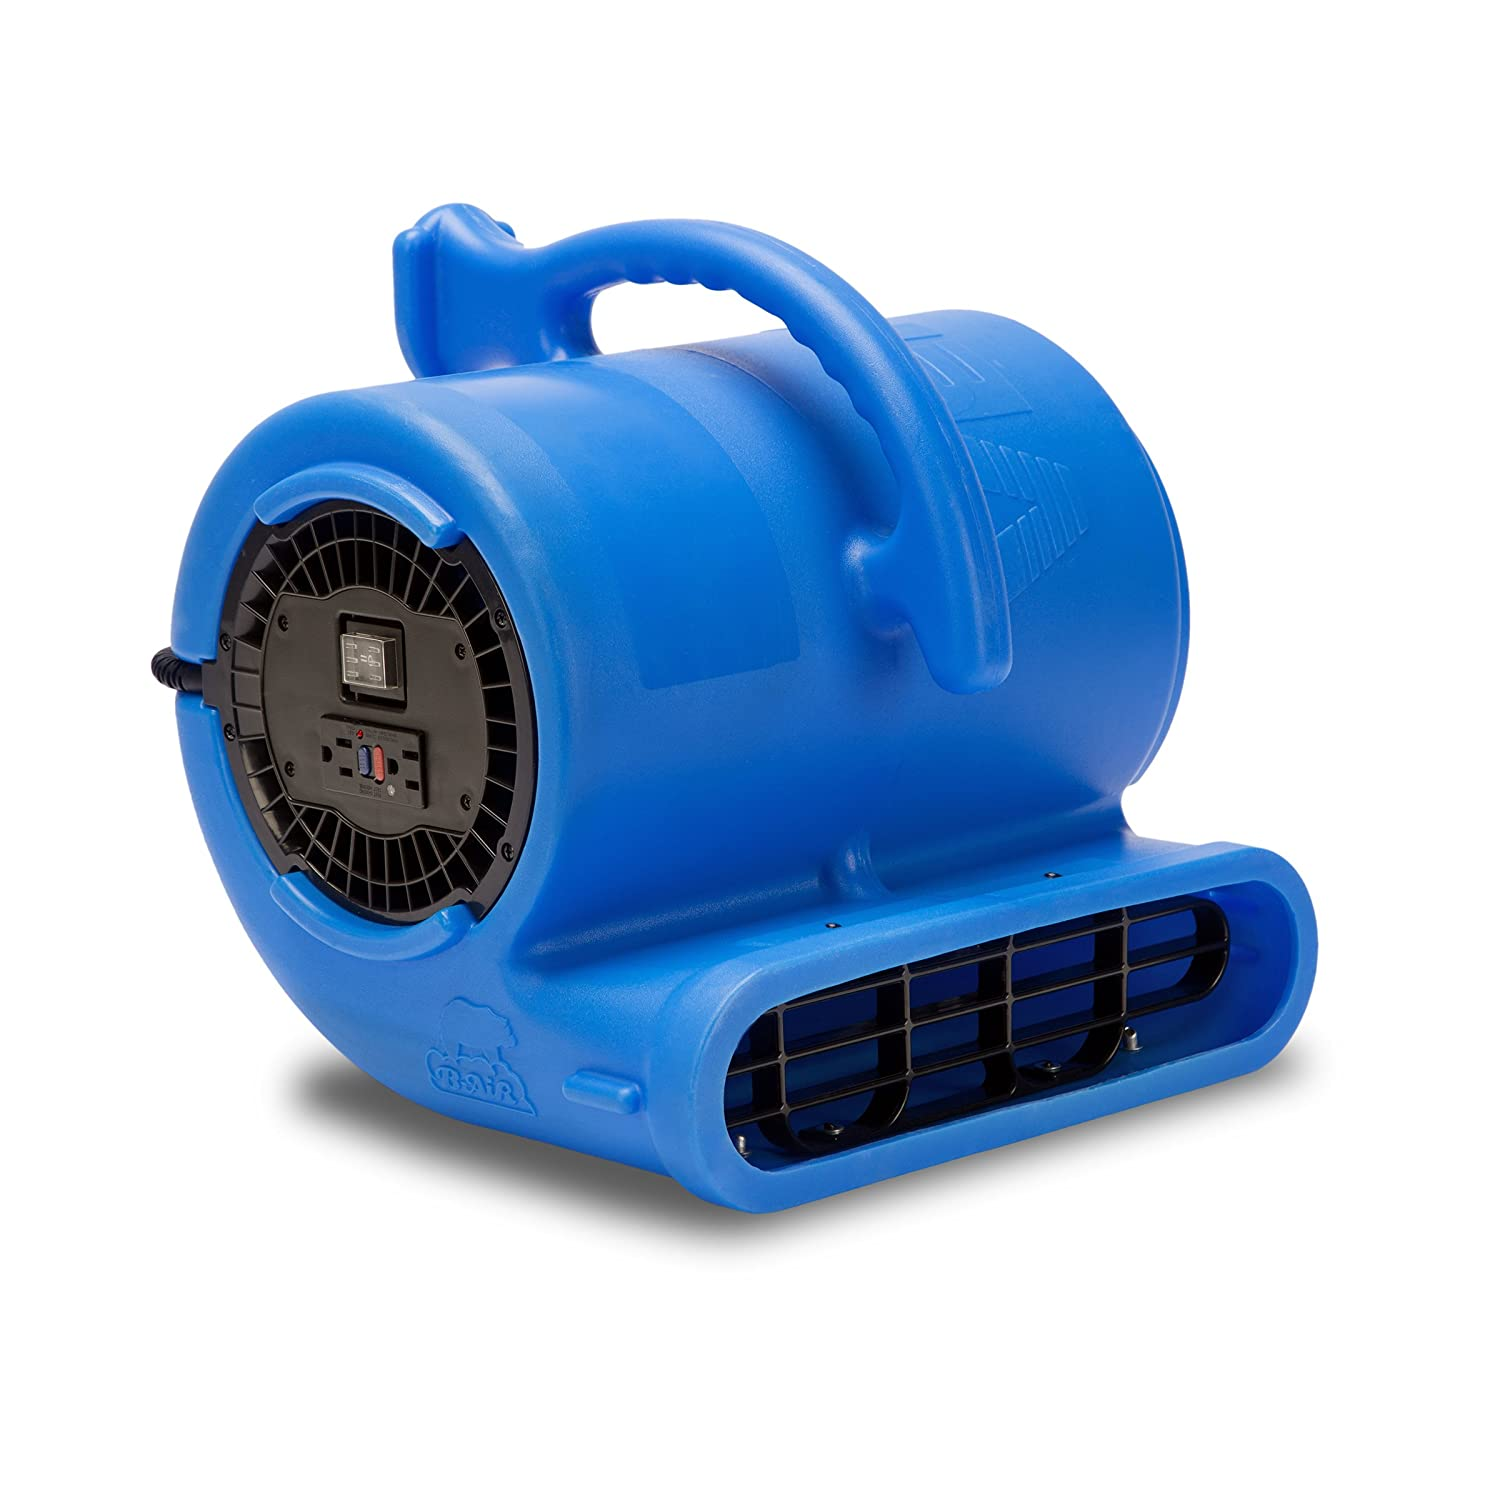 B Air VP 33 1 3 HP 2530 CFM Air Mover for Water Damage Restoration Carpet Dryer Janitorial Floor Blower Fan Blue